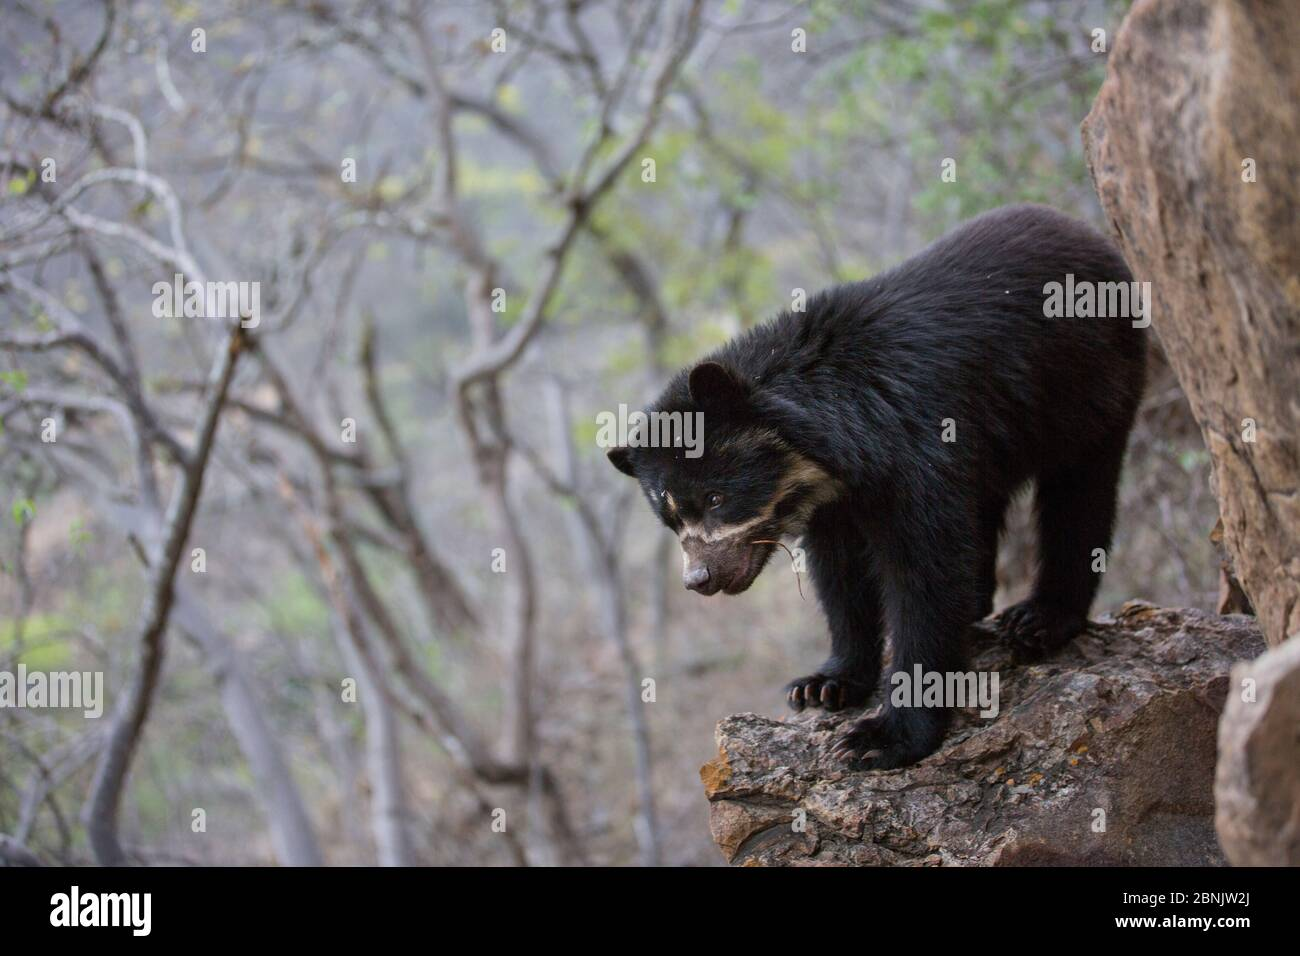 Spectacled bear (Tremarctos ornatus) Chaparri Ecological Reserve, Peru Stock Photo